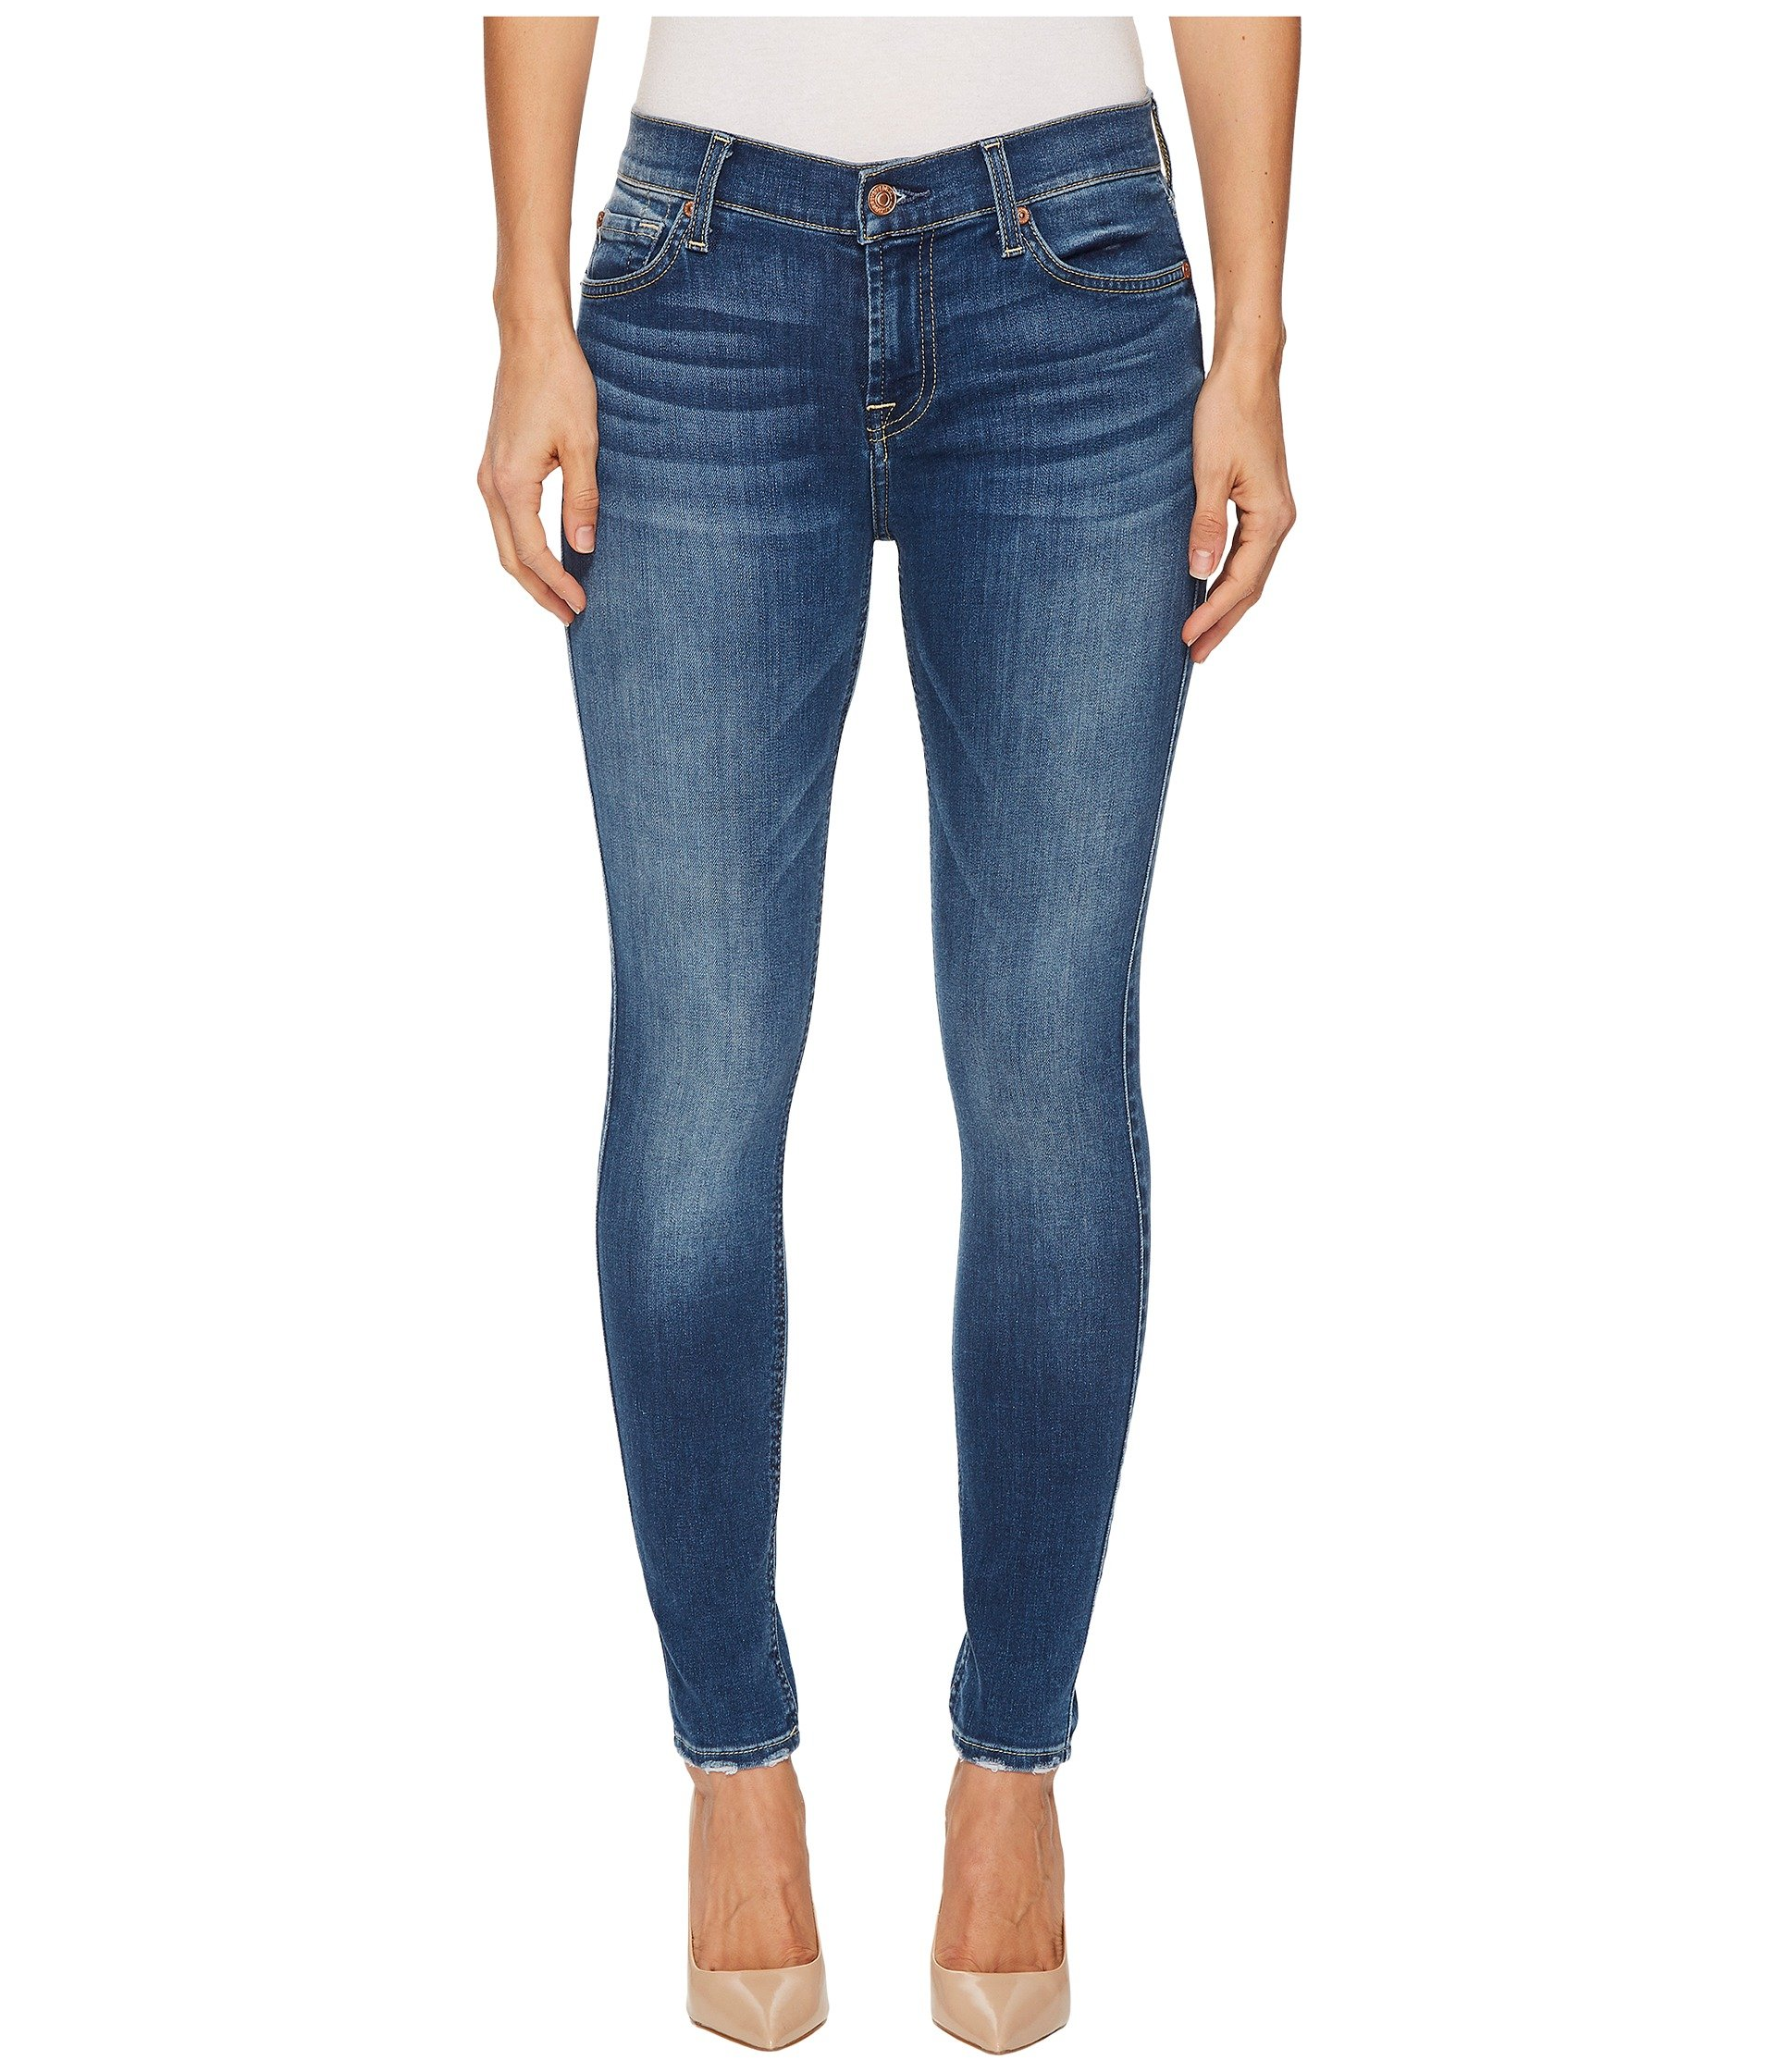 7 For All Mankind Women's Ankle Skinny Jean with Extreme Grinded Hem, BELLAHRTG3, 25